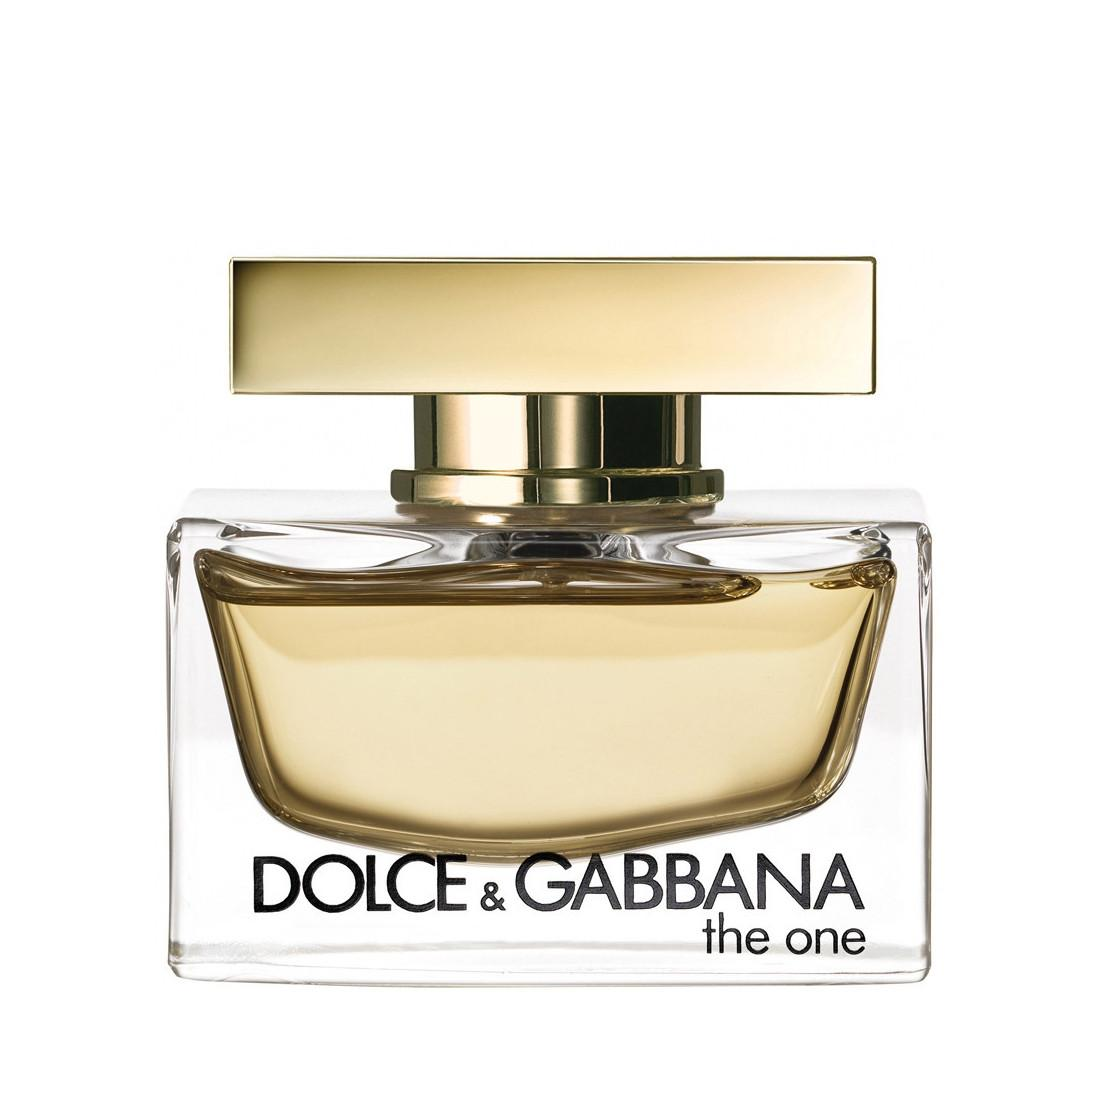 Dolce&Gabbana The One For Women Eau De Parfum